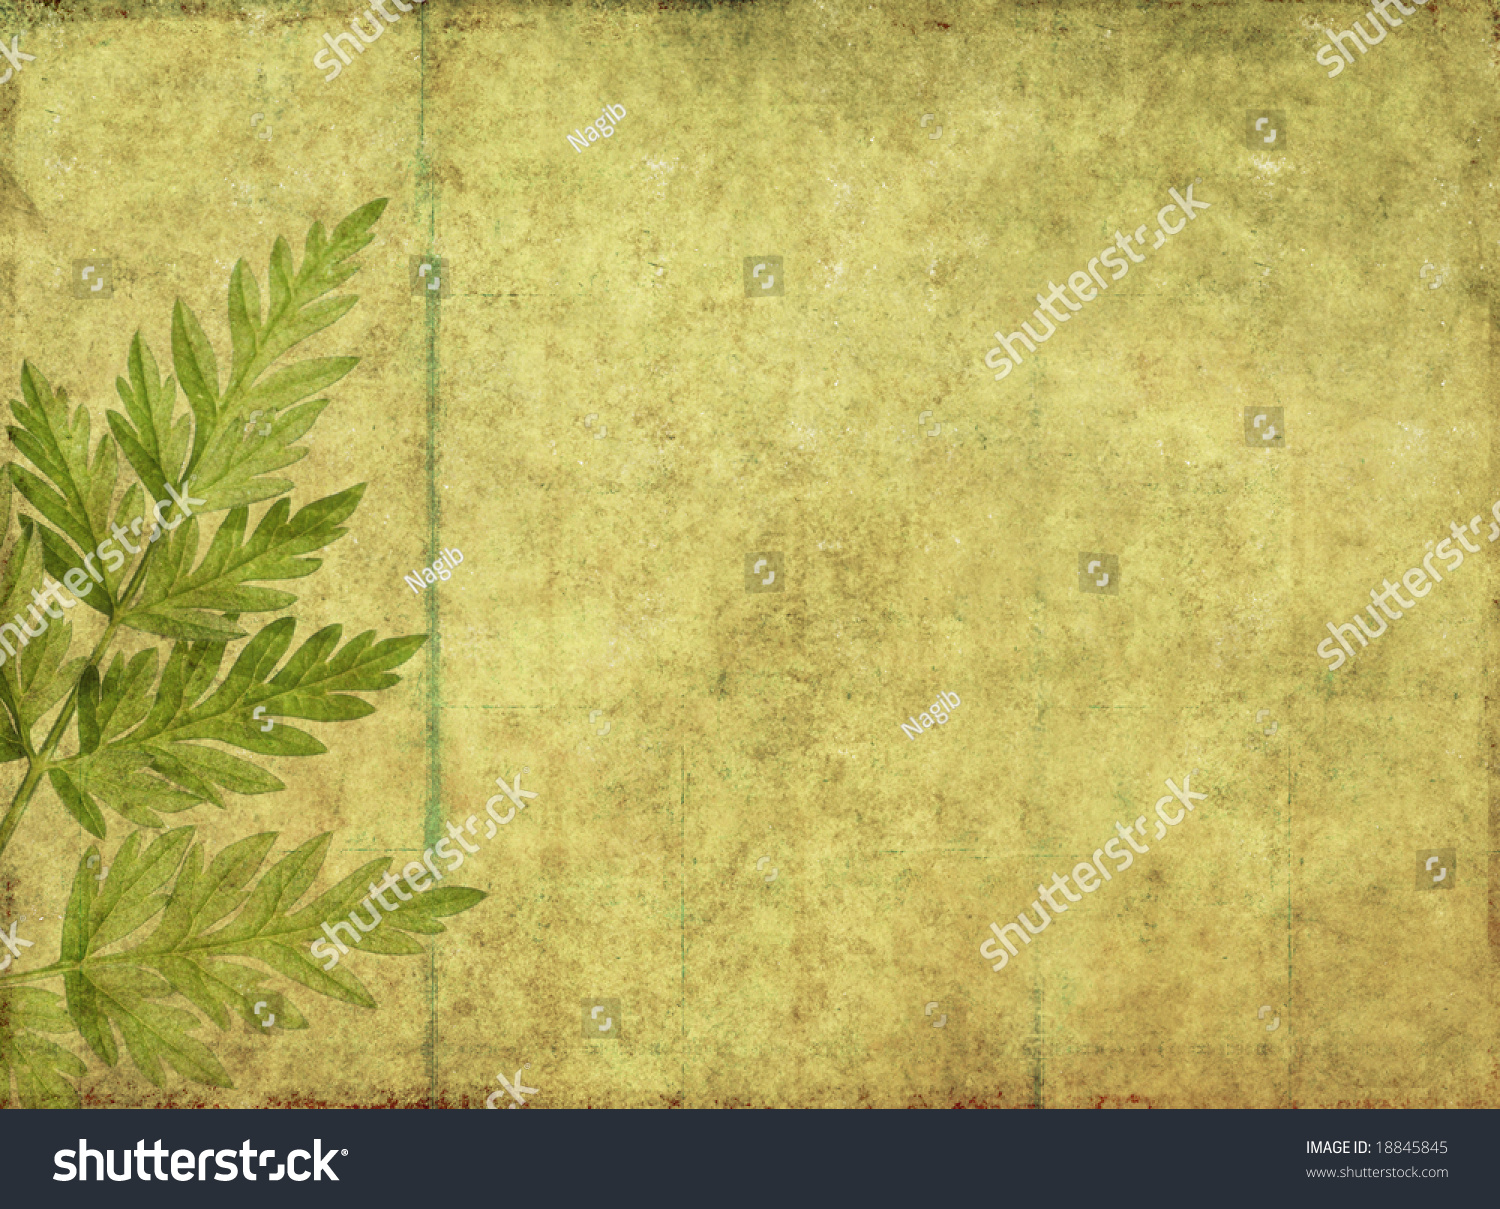 Lovely Brown Background Image With Interesting Texture And ... - photo#18